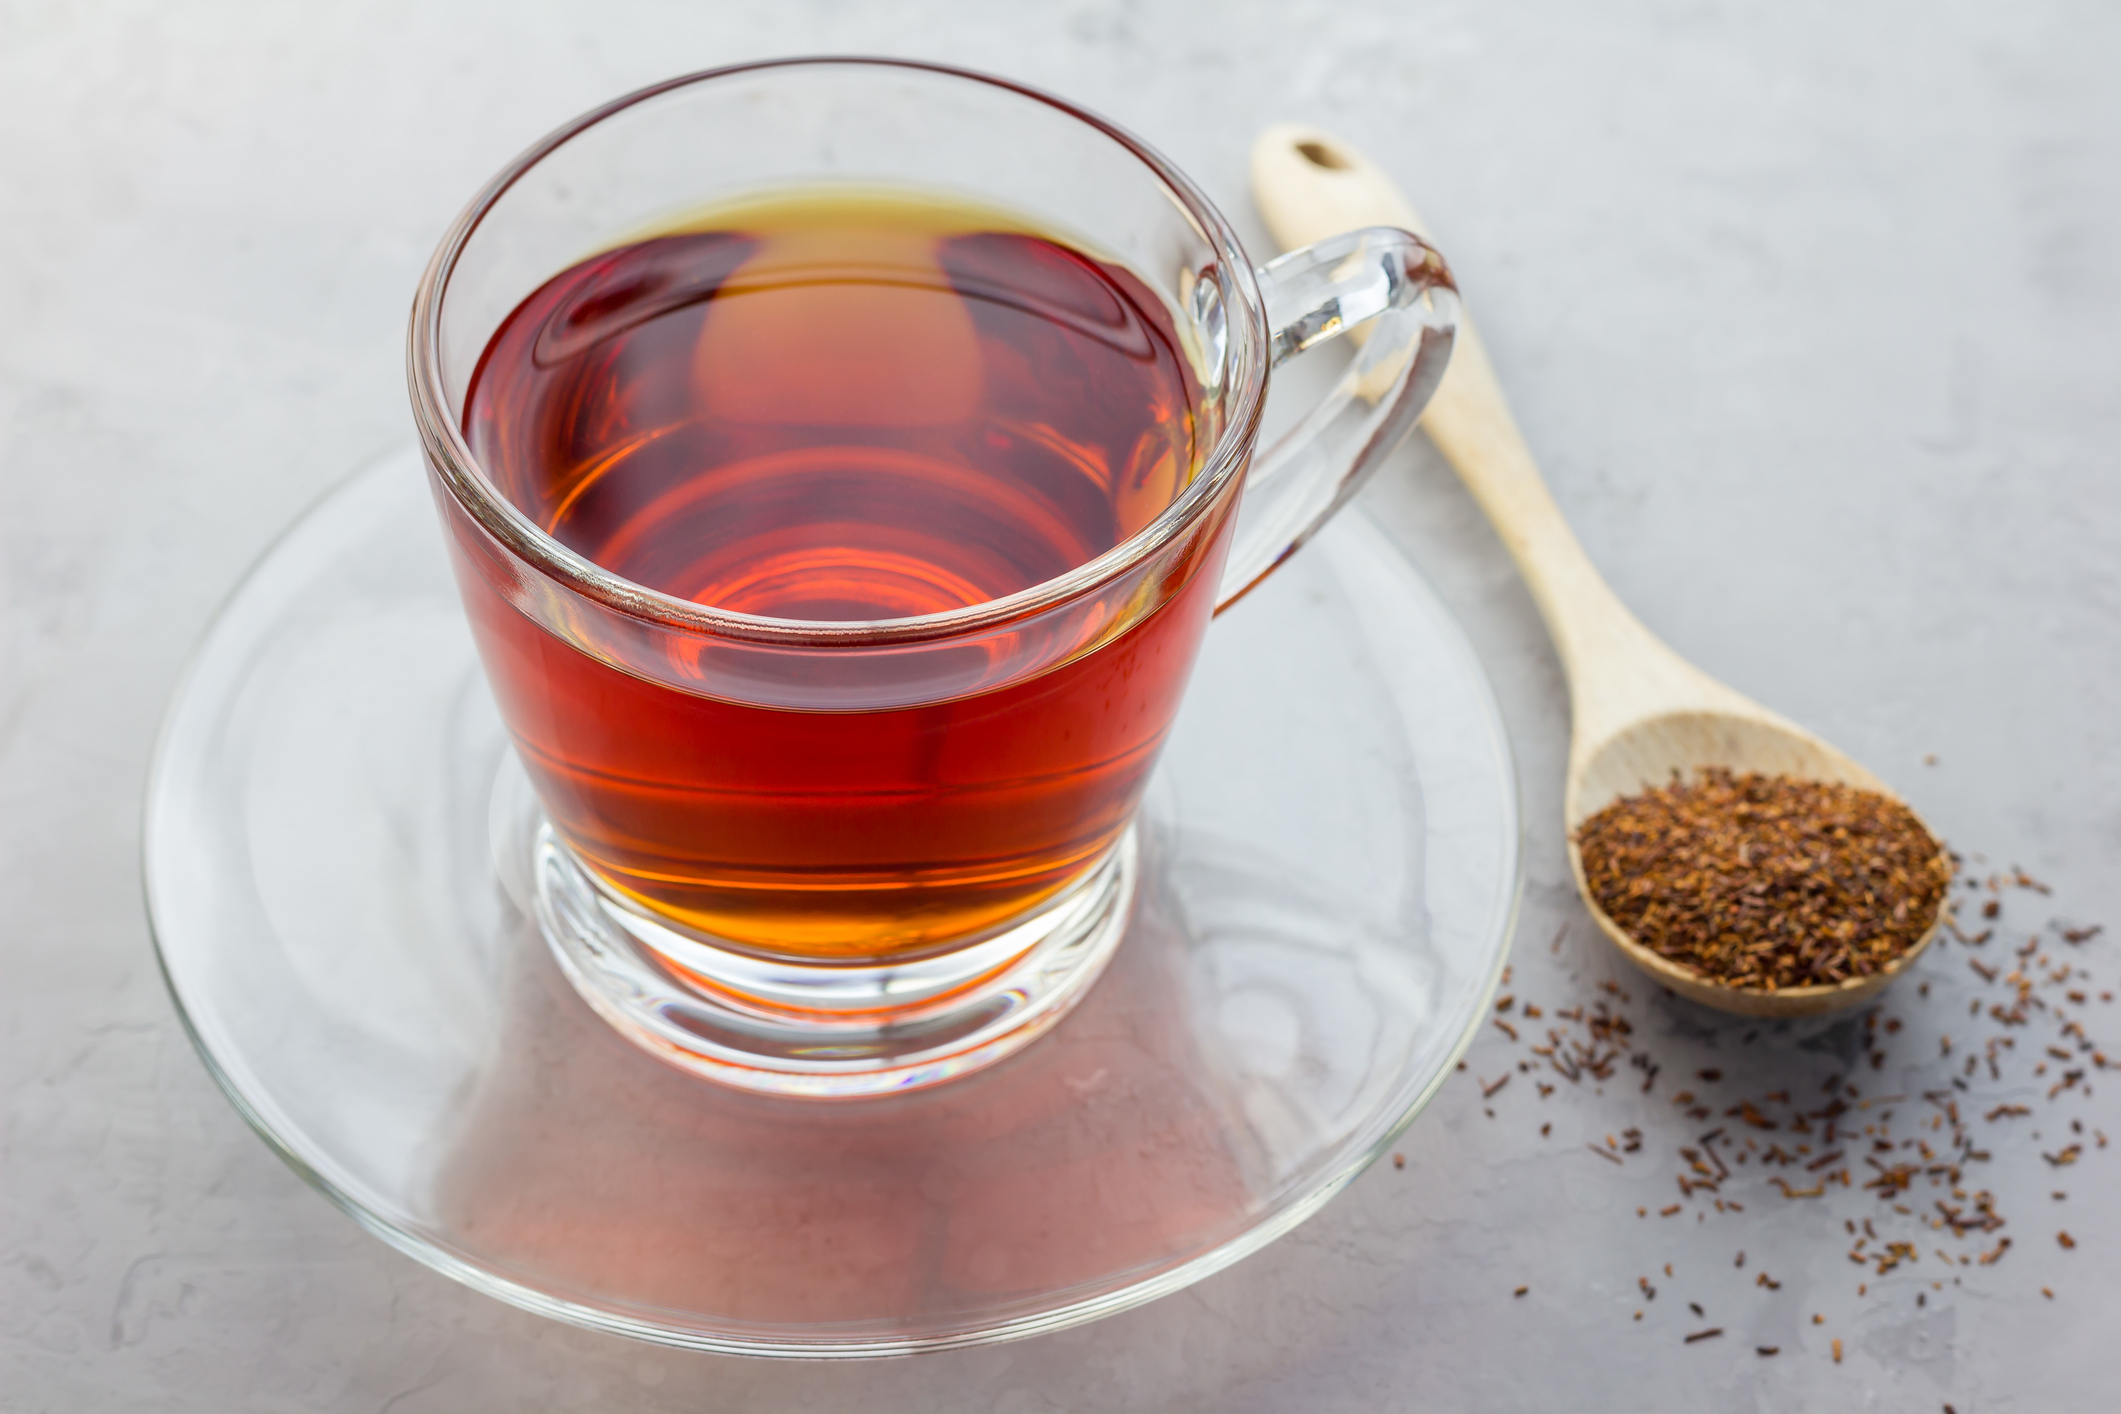 How to Brew Rooibos Tea